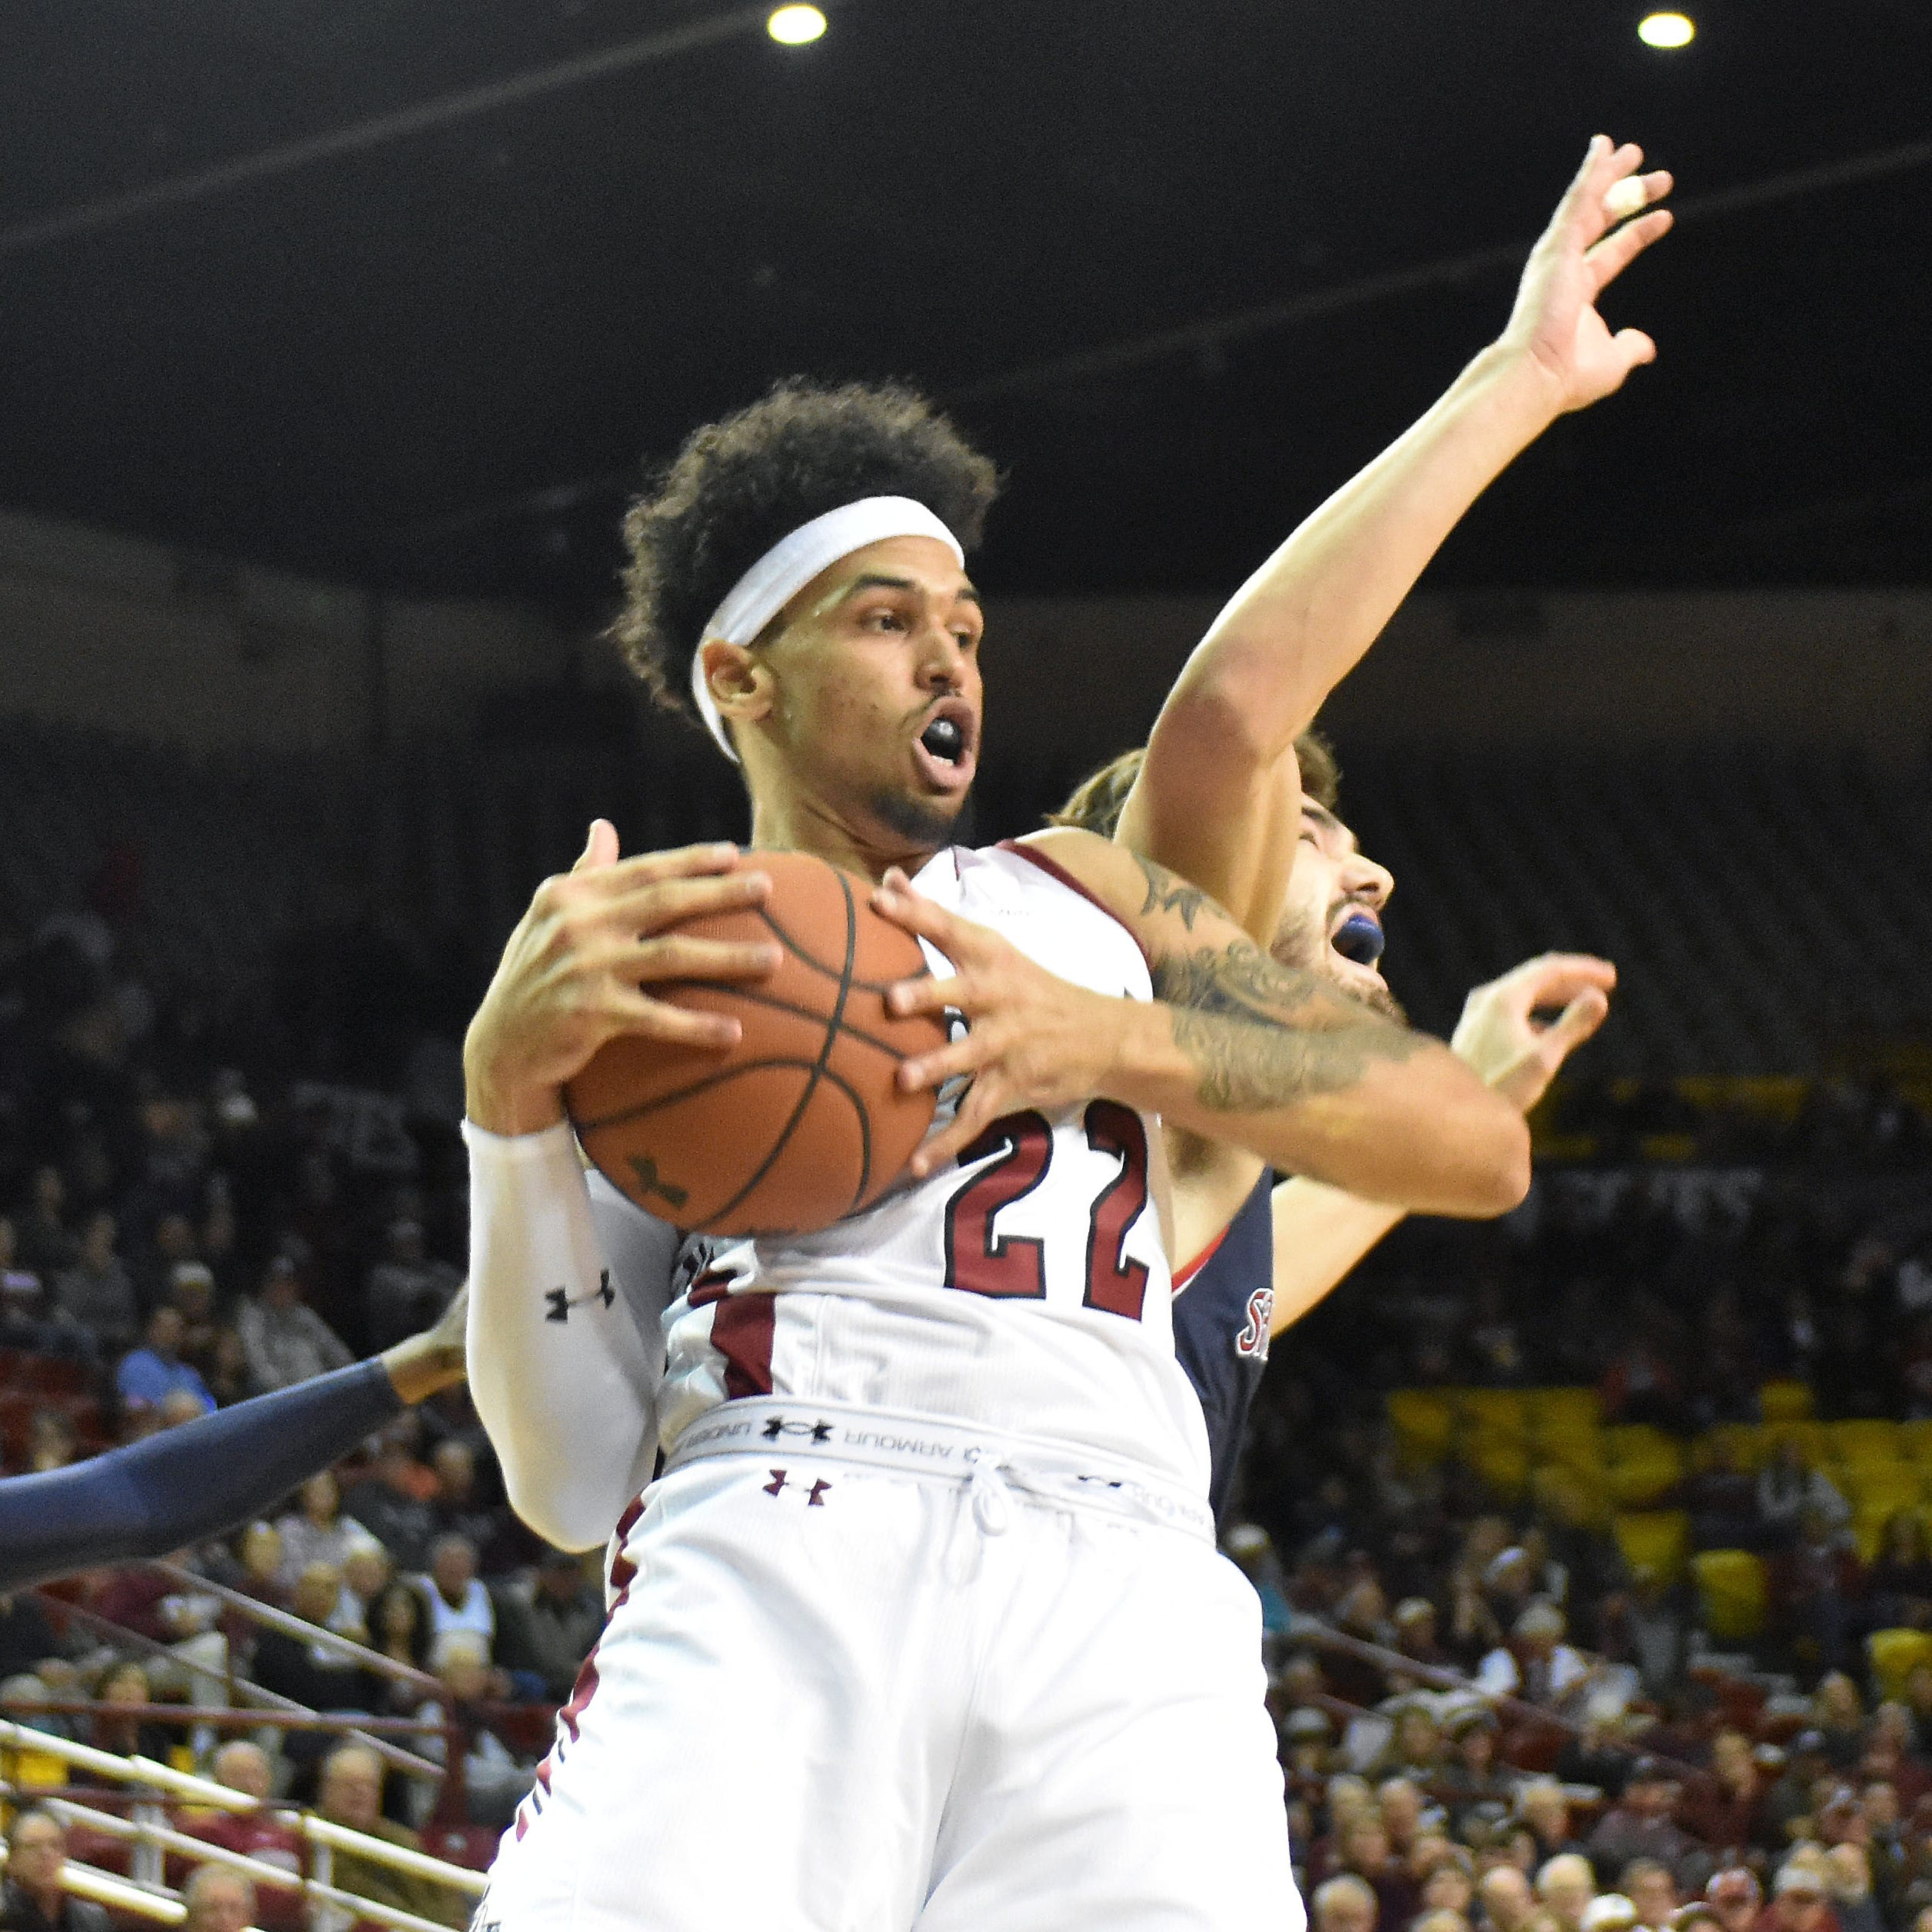 New Mexico State looks for 4th straight win over New Mexico